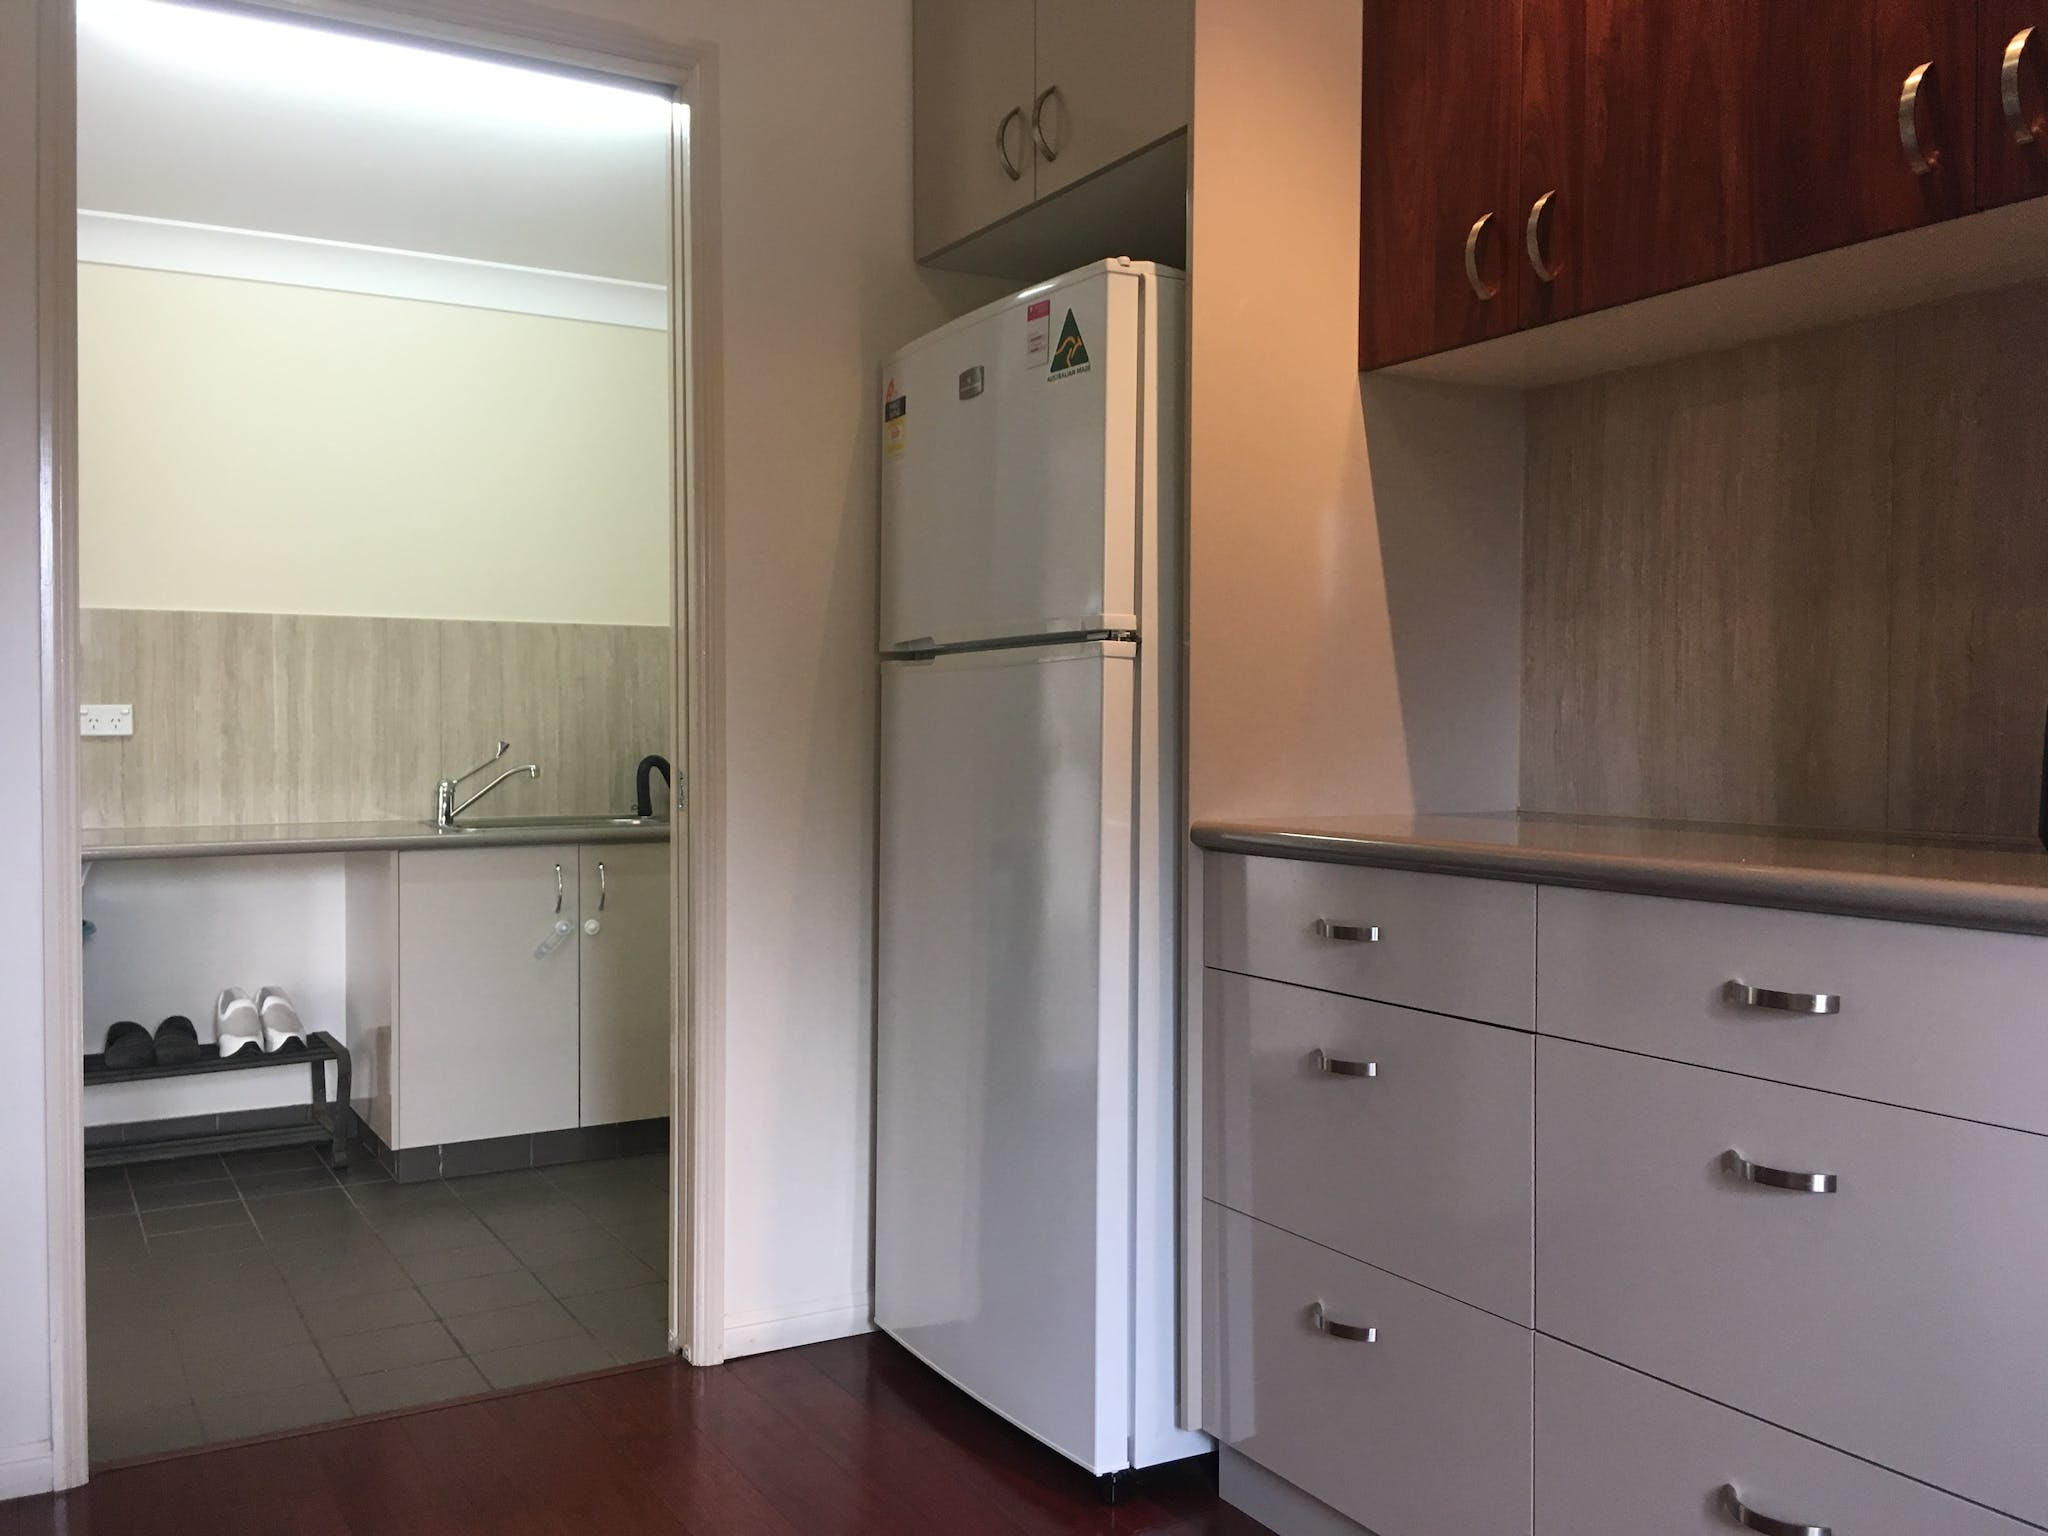 89_on_Guy_Galley_Kitchen_as_part _of_accommodation_warwick_qld_2bd_guest_house